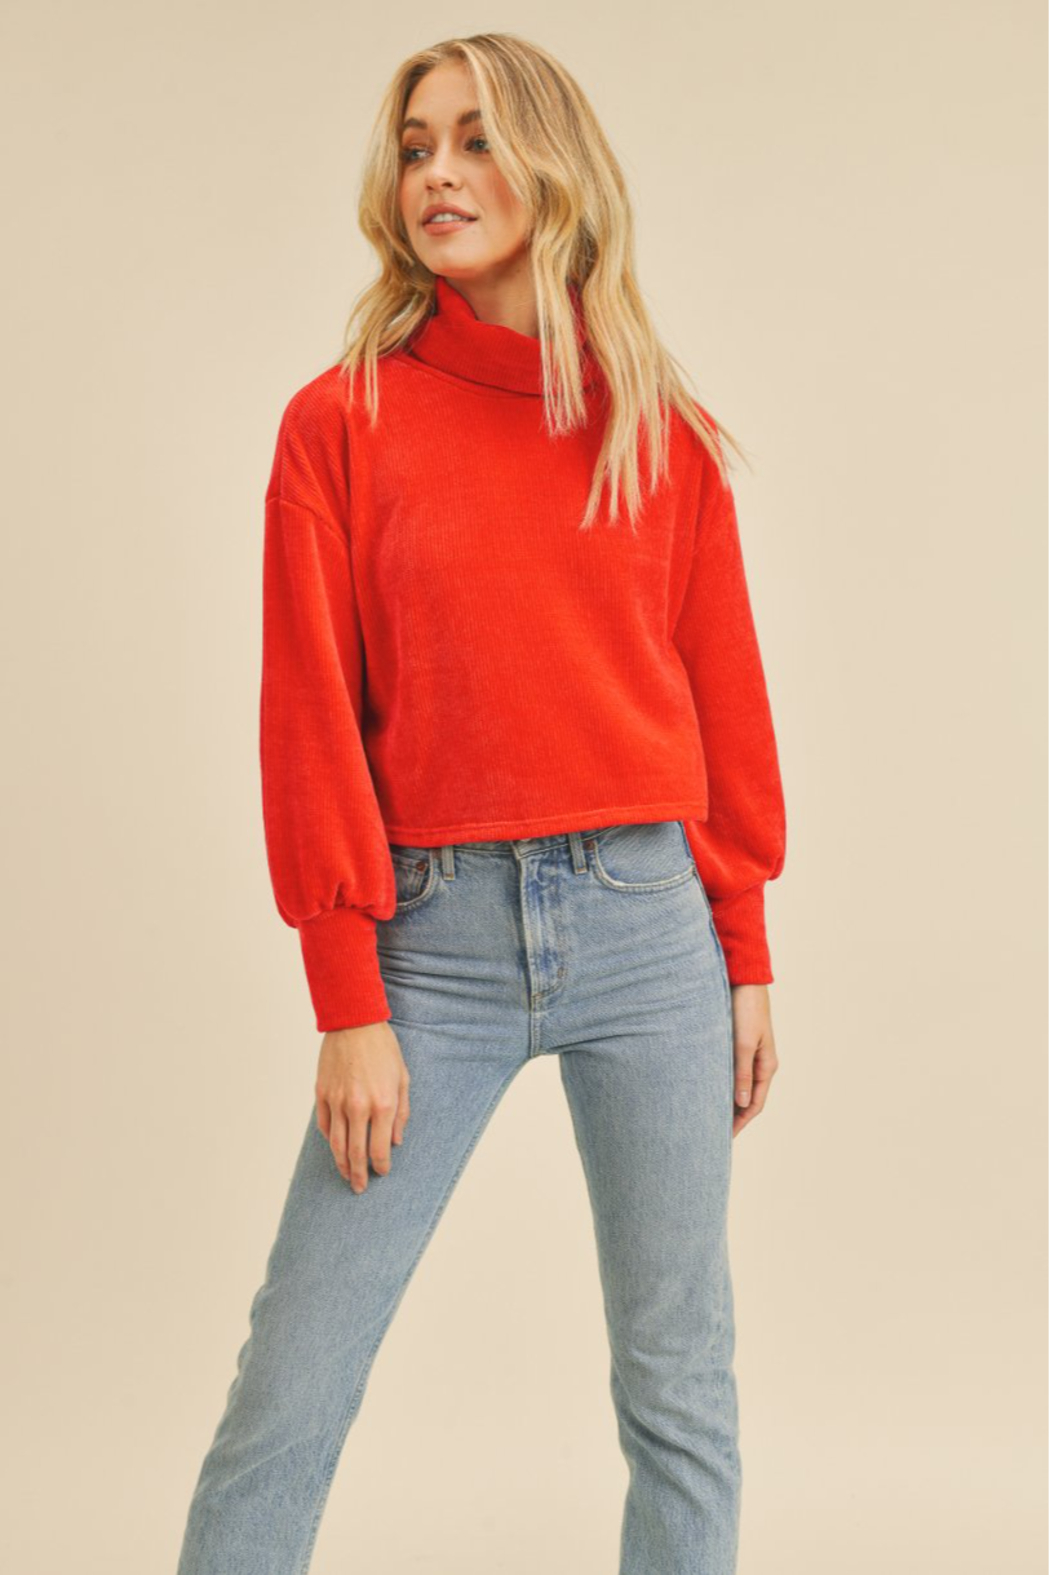 If She Loves Red Turtleneck Sweater - Main Image